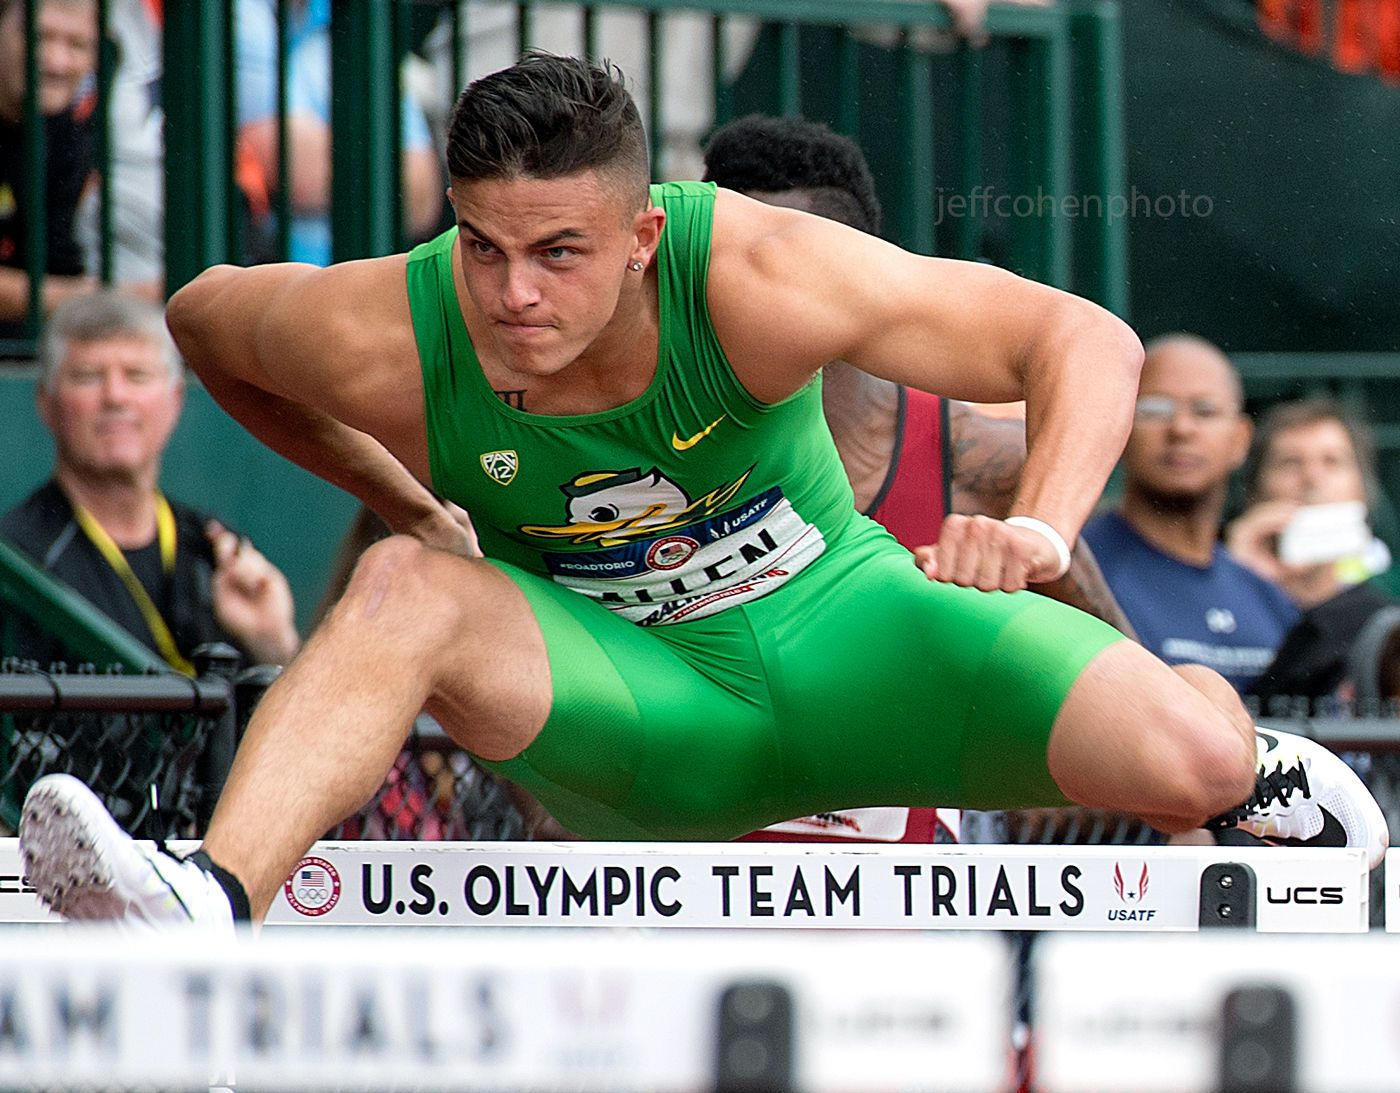 1r2016_oly_trials_day_7_devon_allen_110mh_jeff_cohen_photo_22073_web.jpg